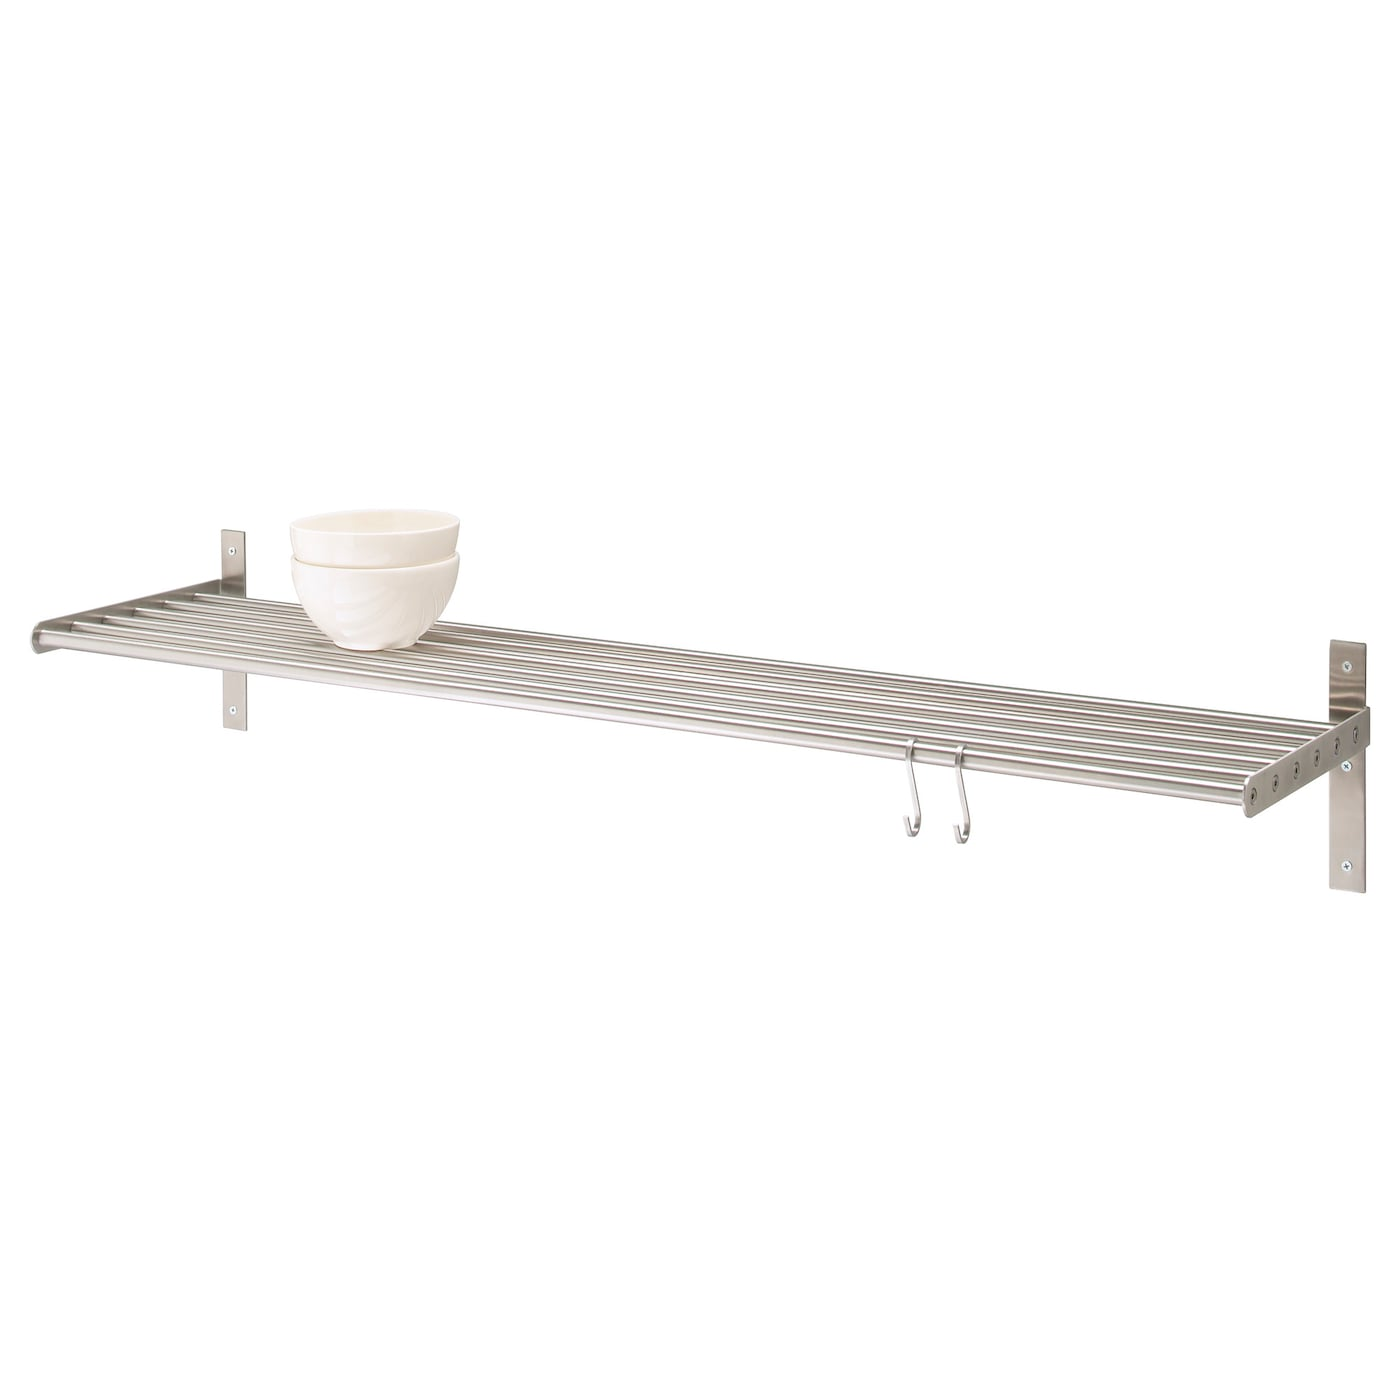 IKEA GRUNDTAL wall shelf Saves space on the worktop. Can be used as a pot lid holder as well.